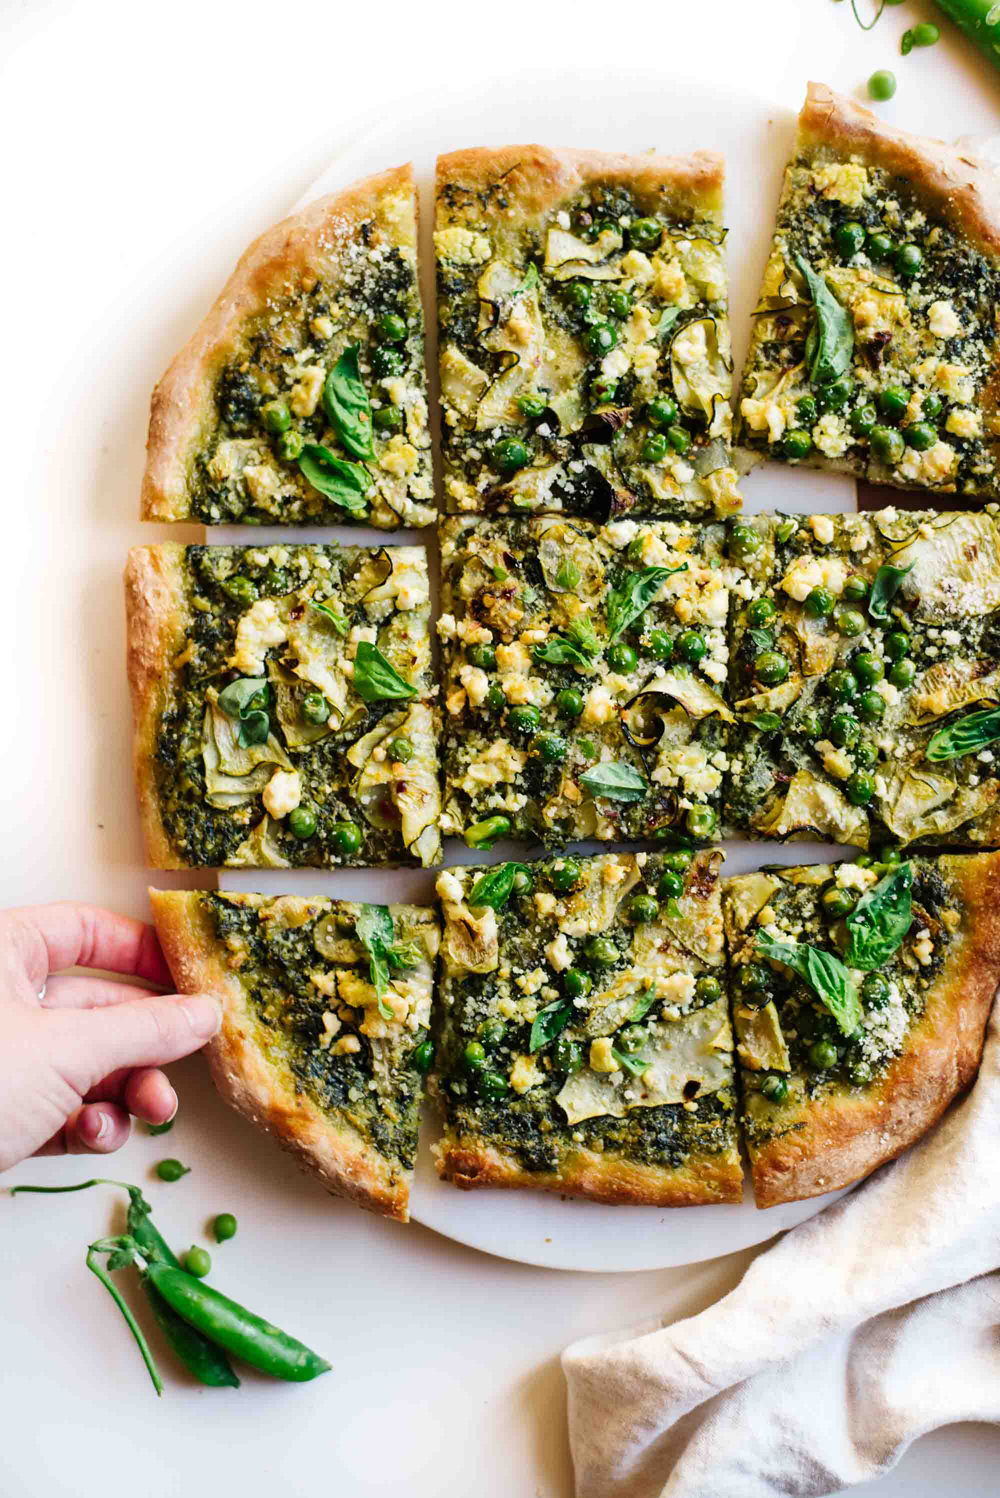 Cool Mom Eats weekly meal plan: Green Goddess Pesto Pizza at Kale and Caramel